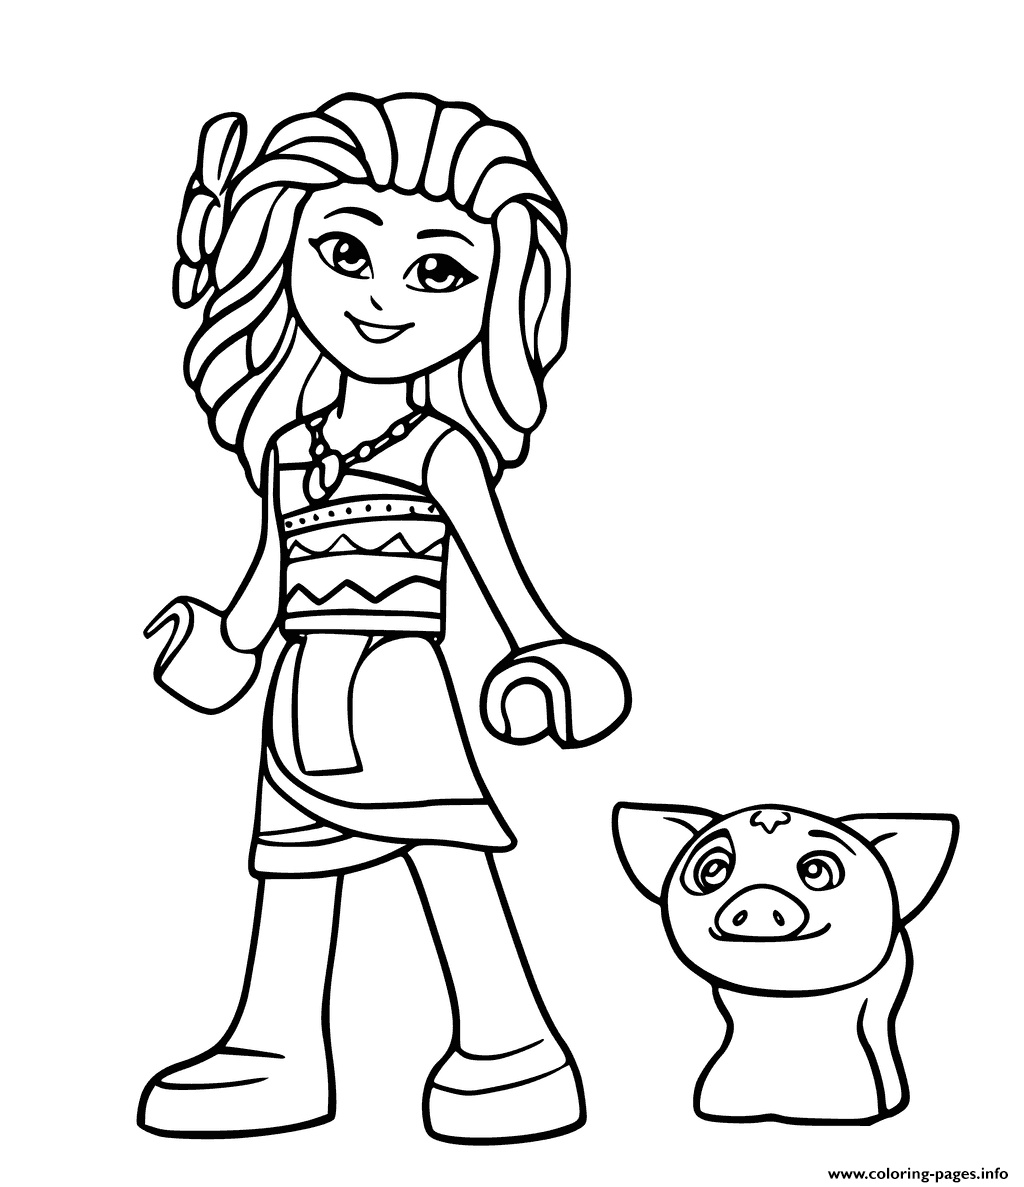 Lego Moana And Pig Pua From Disney